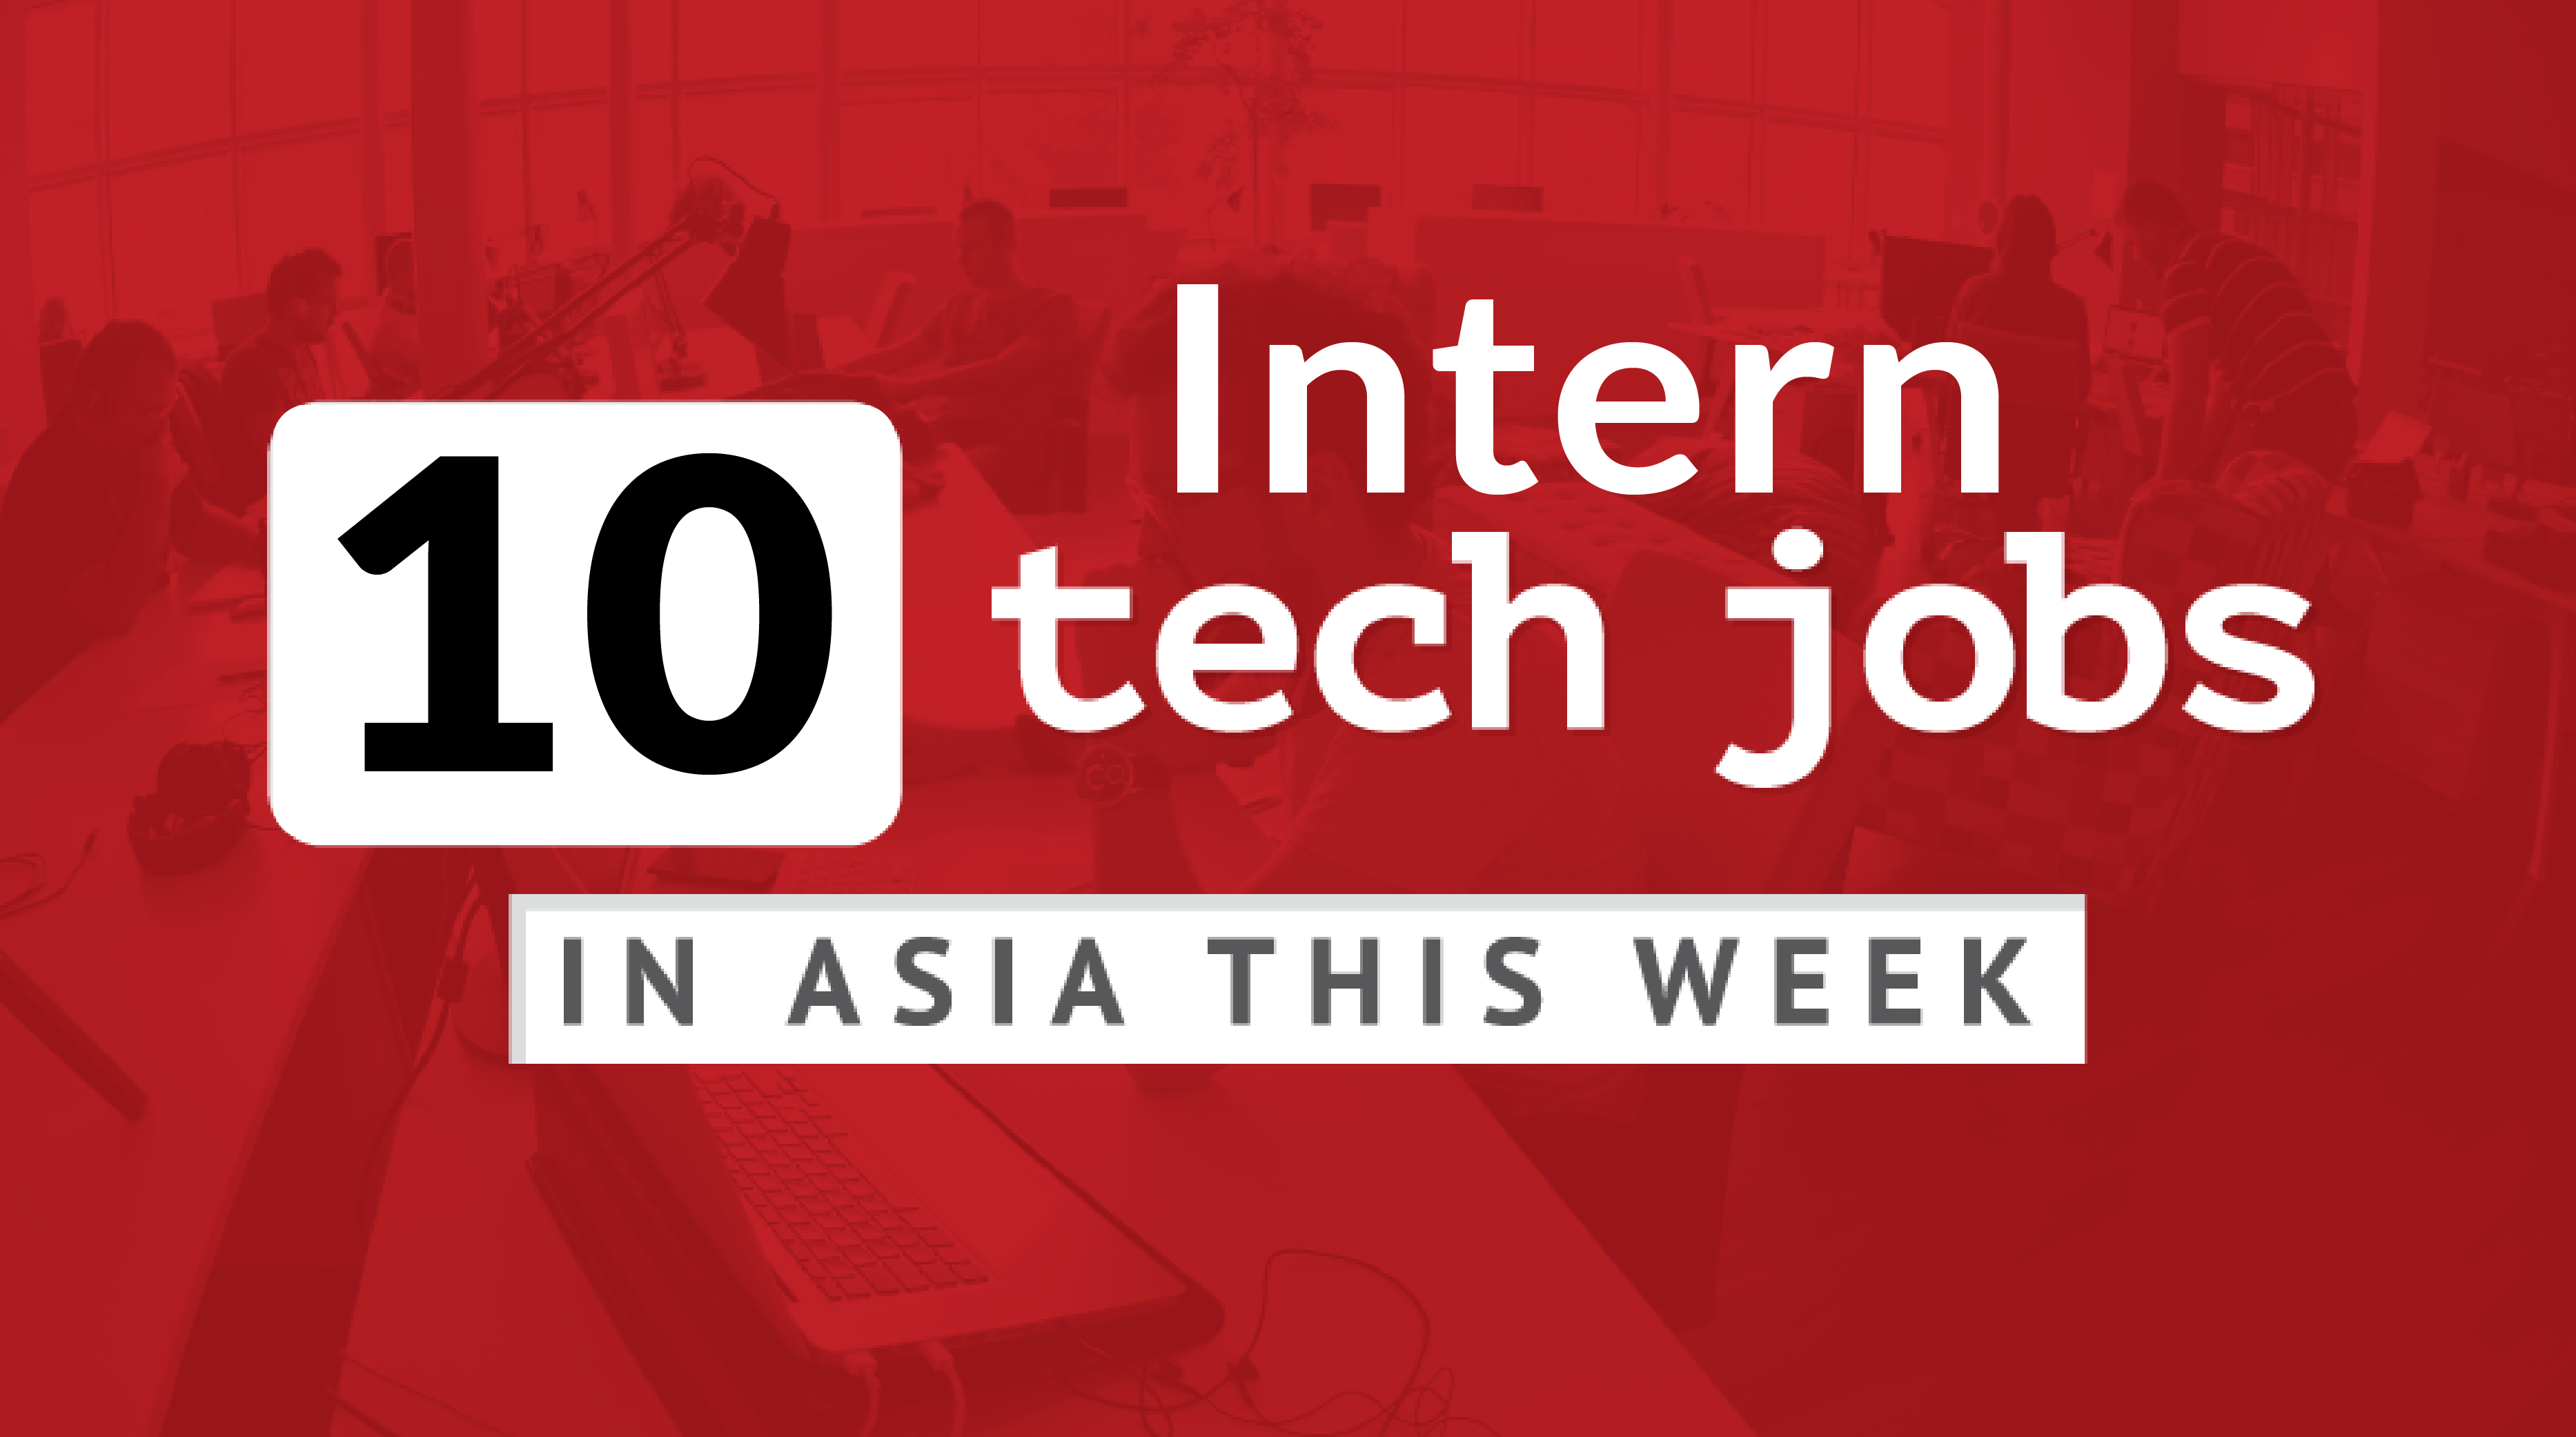 tech and startup intern jobs in asia this week